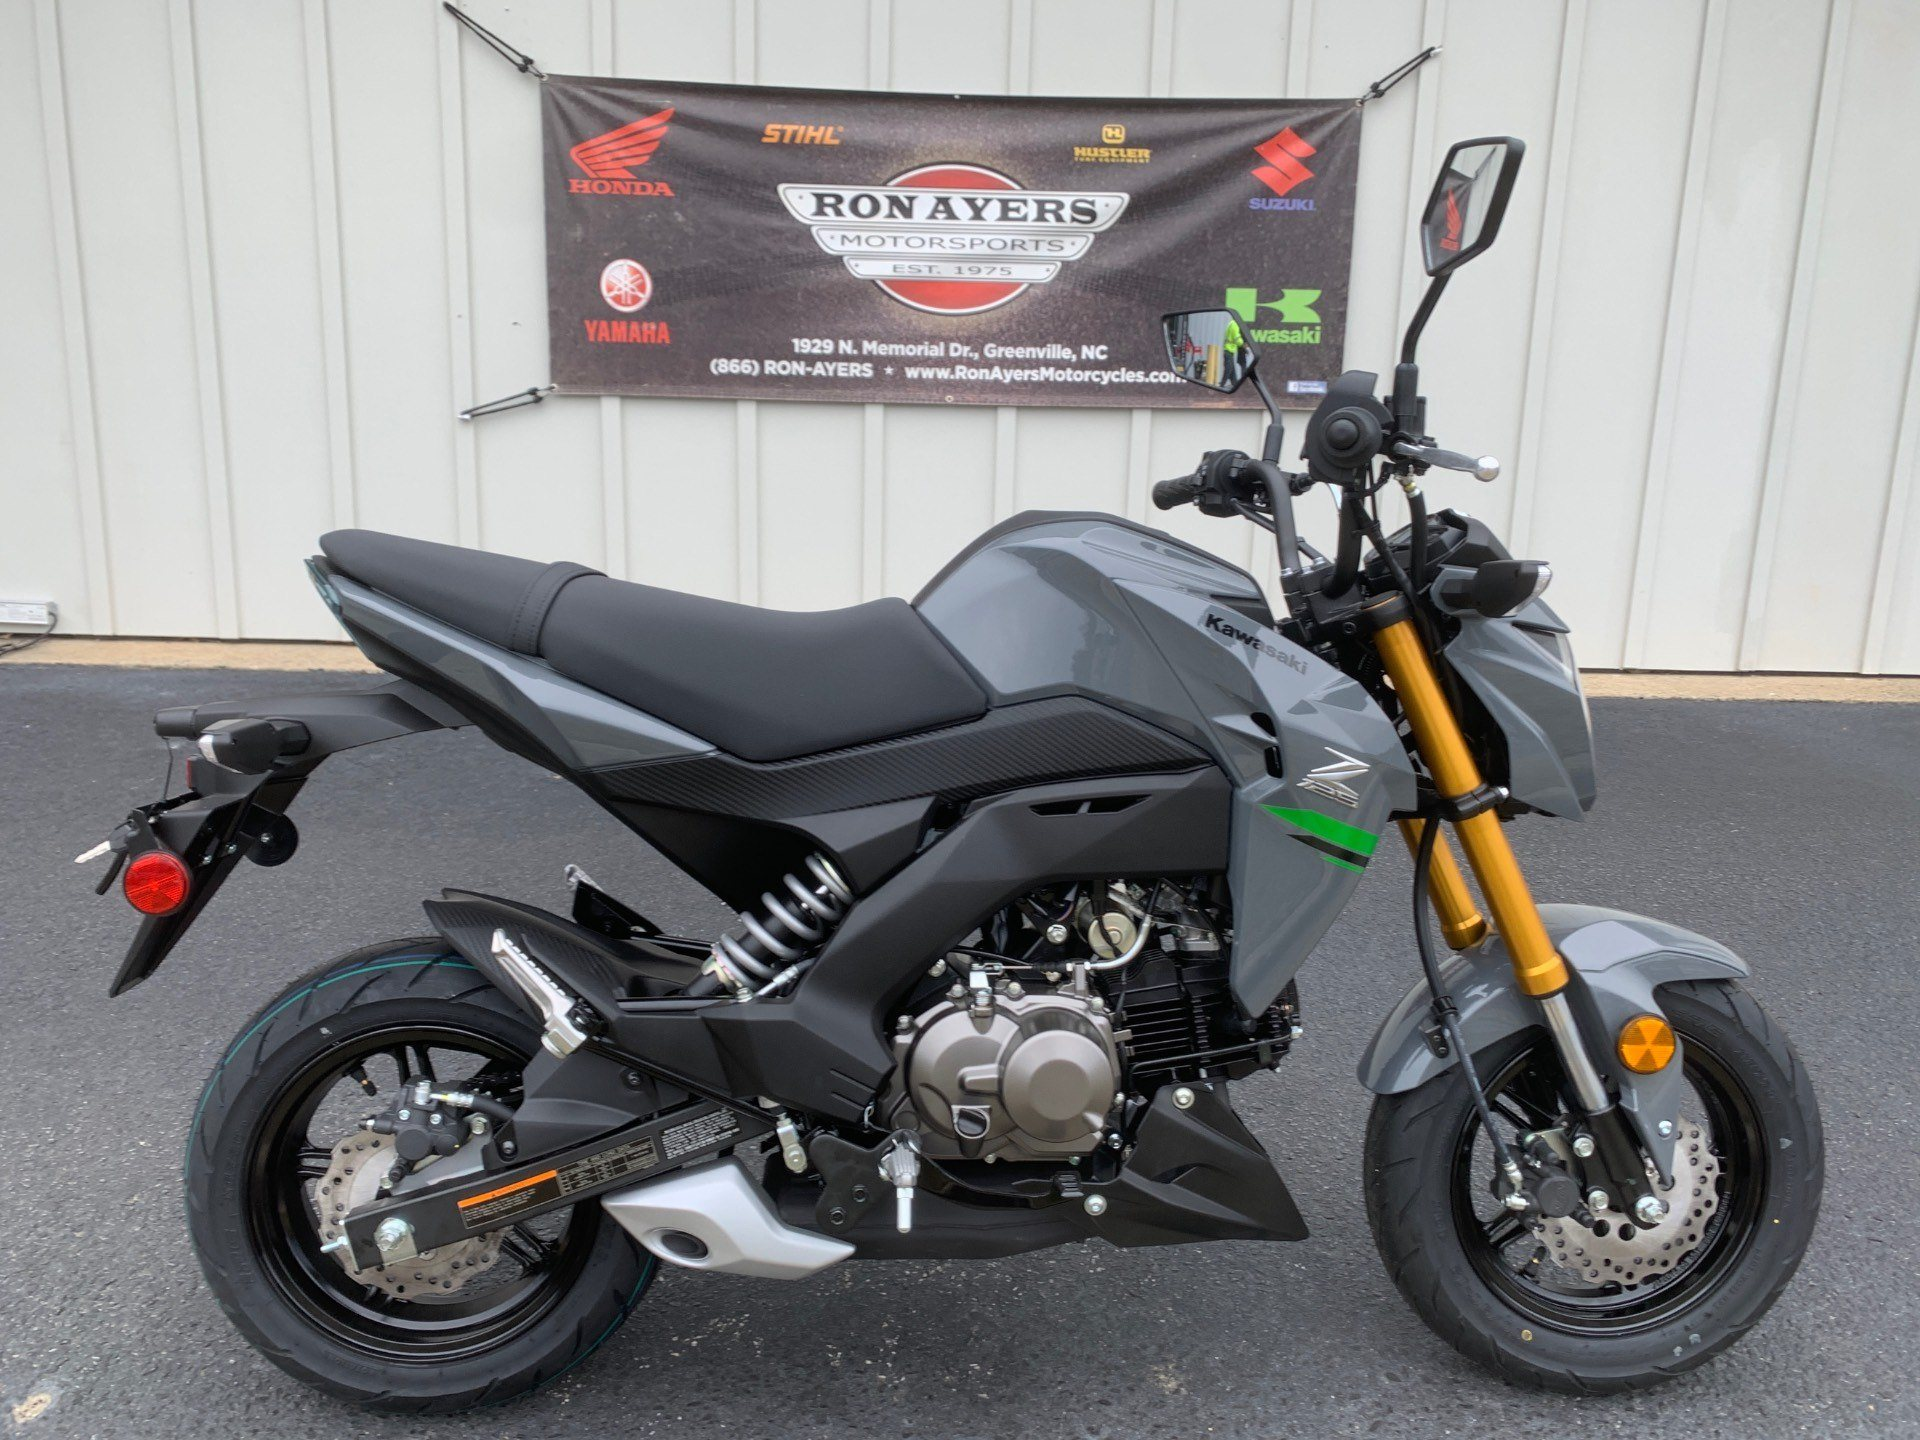 2020 Kawasaki Z125 Pro in Greenville, North Carolina - Photo 1